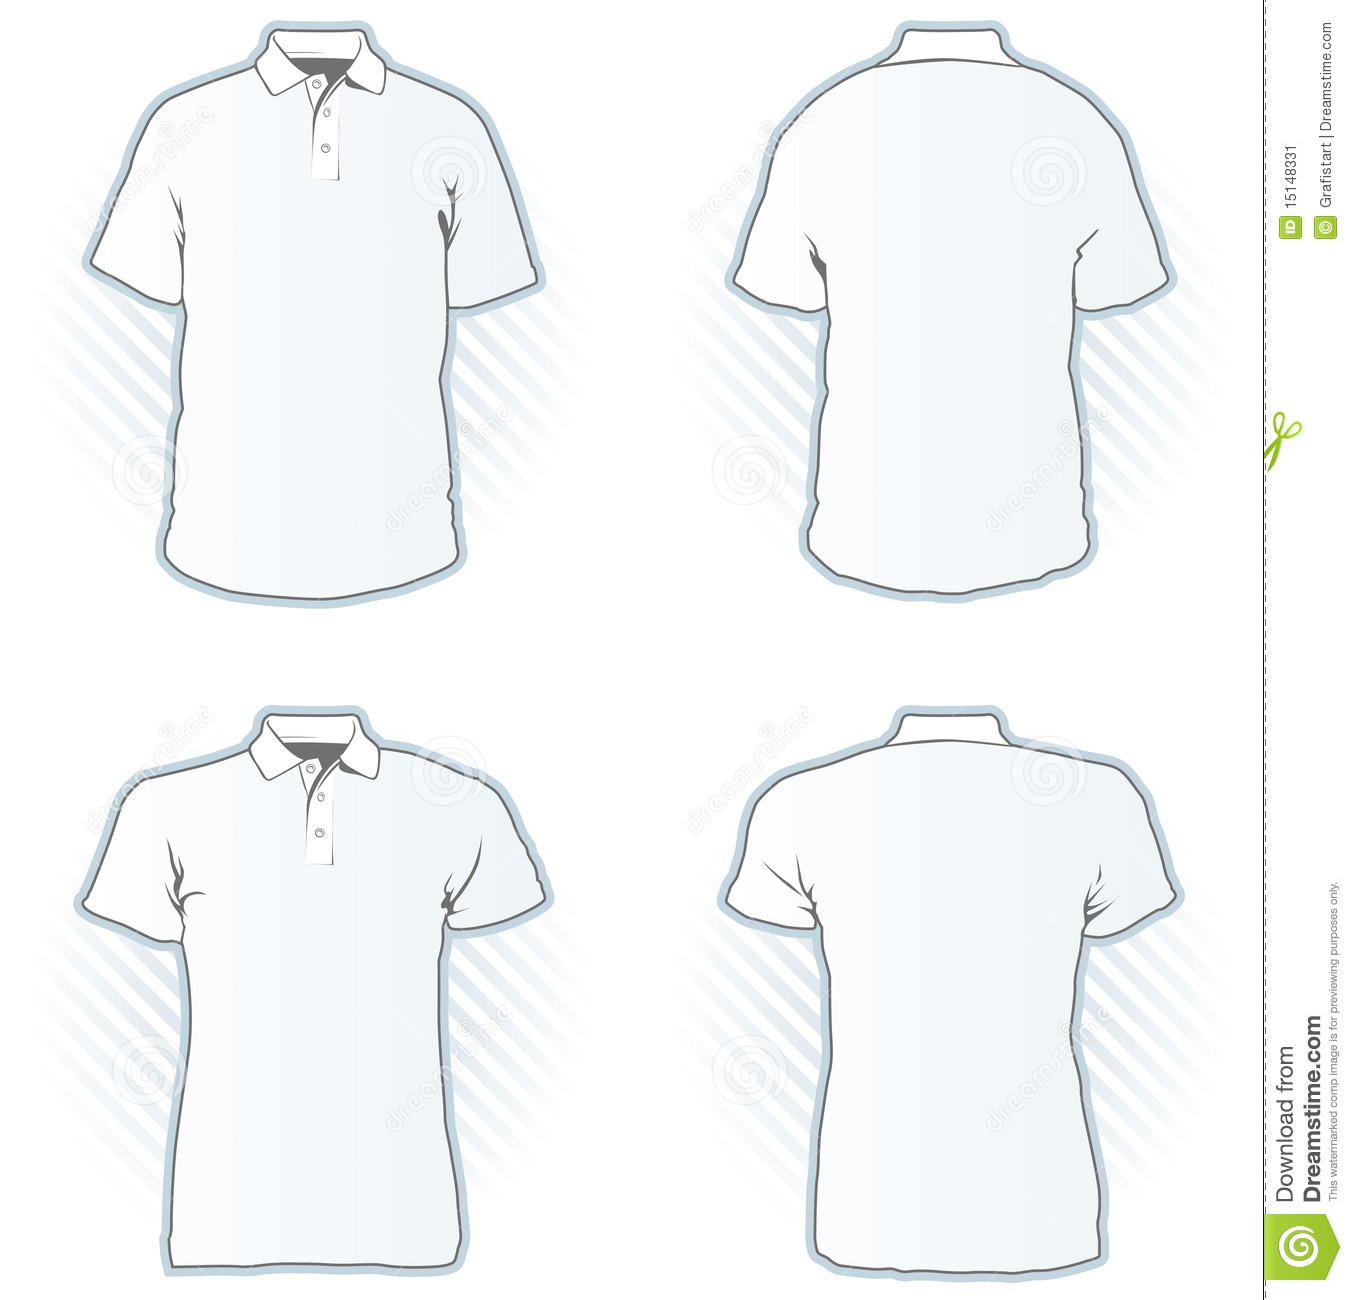 Polo shirt design template set stock vector illustration for Polo shirt design template